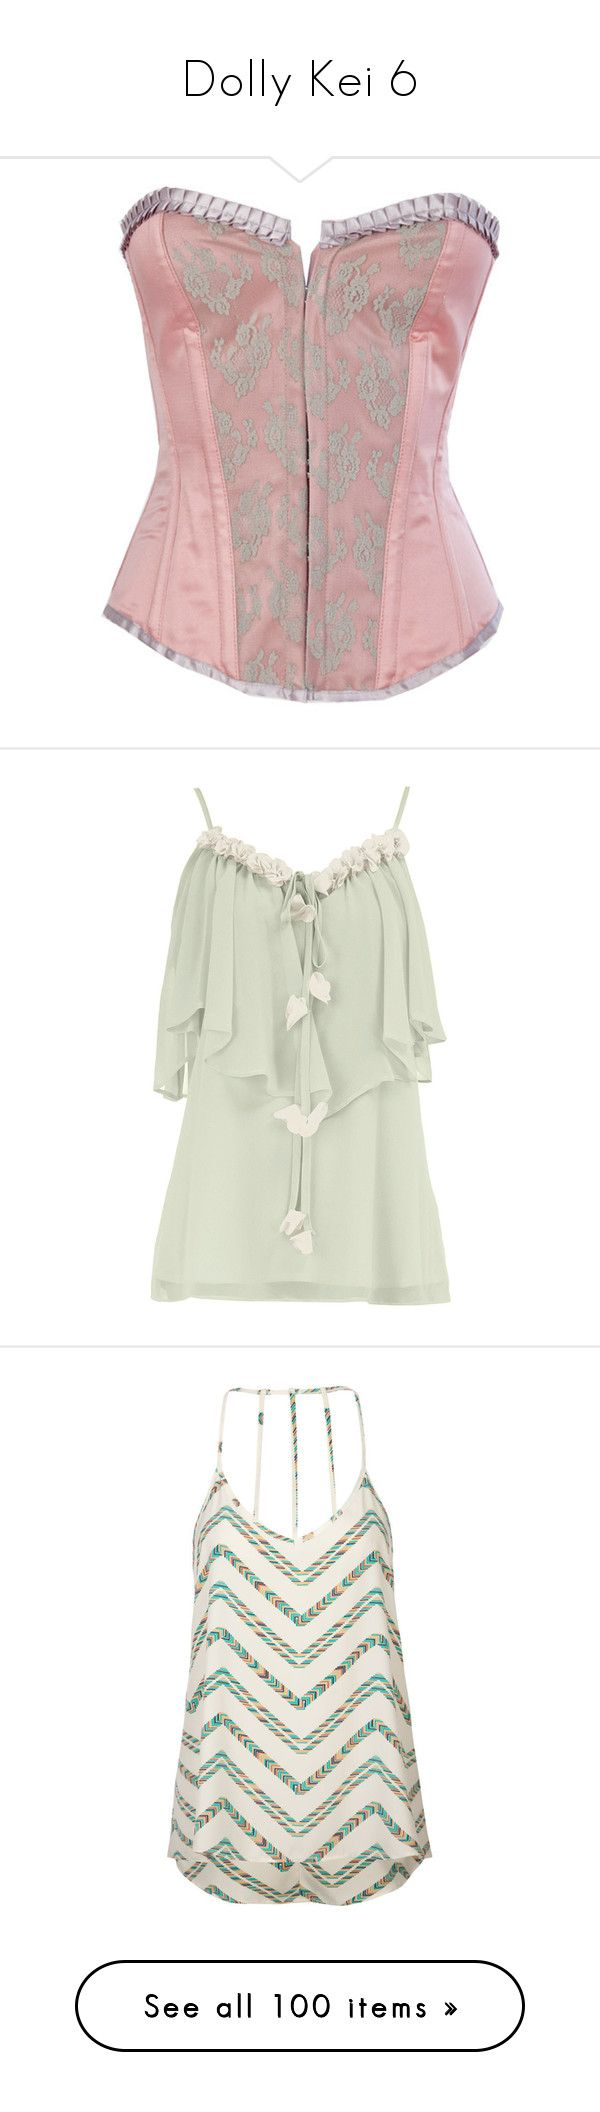 """""""Dolly Kei 6"""" by roseunspindle ❤ liked on Polyvore featuring tops, corsets, shirts, lingerie, underwear, tank tops, tanks, dresses, tie shirt and tie-dye tank tops"""